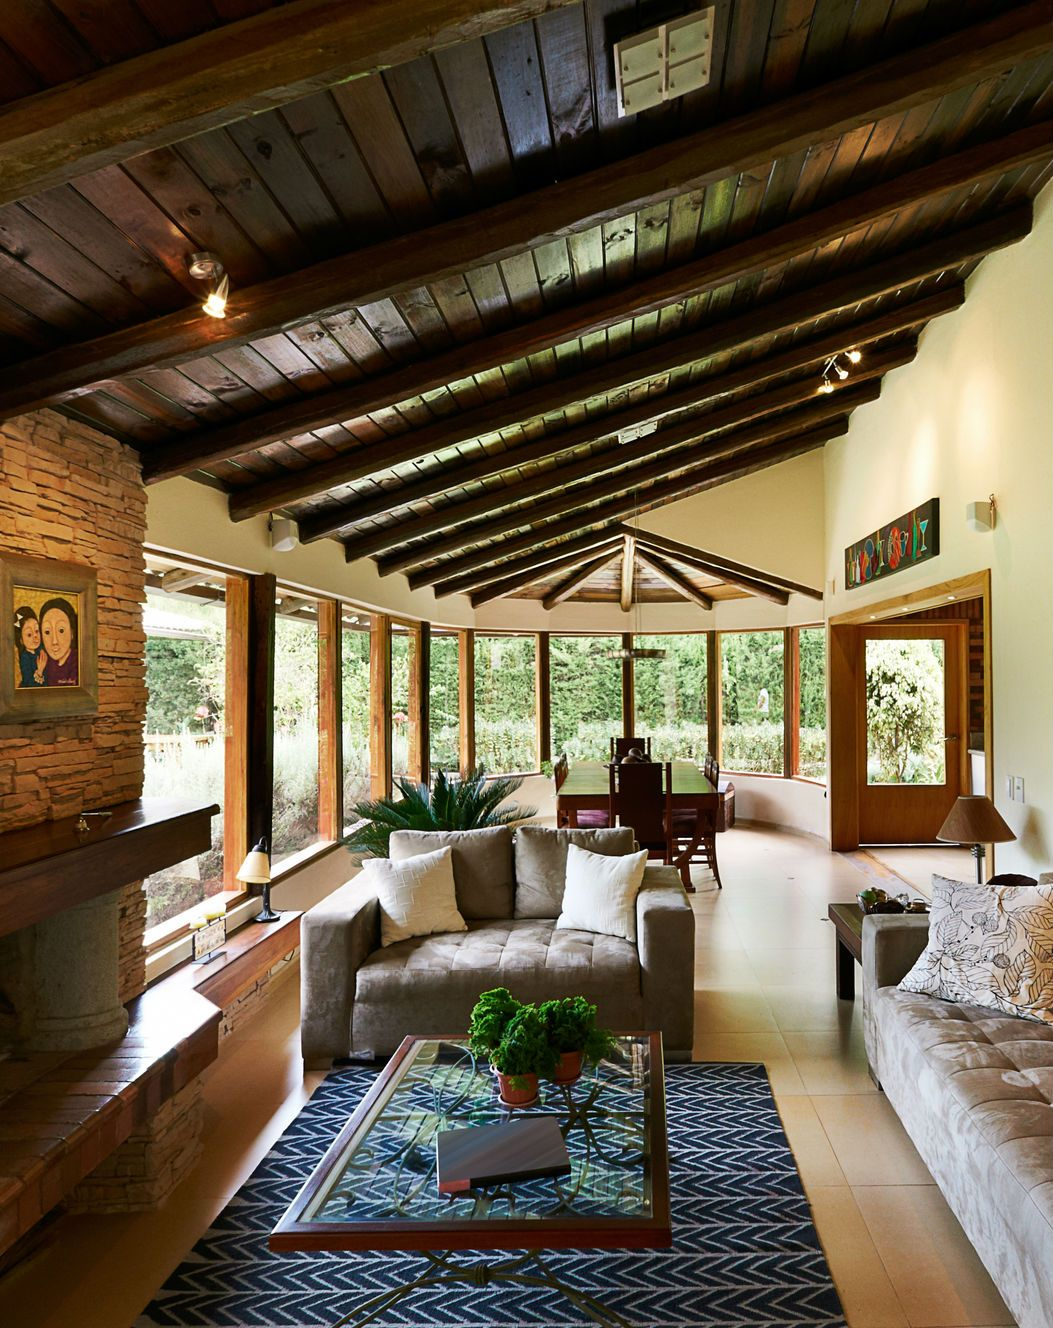 Dream Living Room Design In Rustic Style With Exposed Ceiling